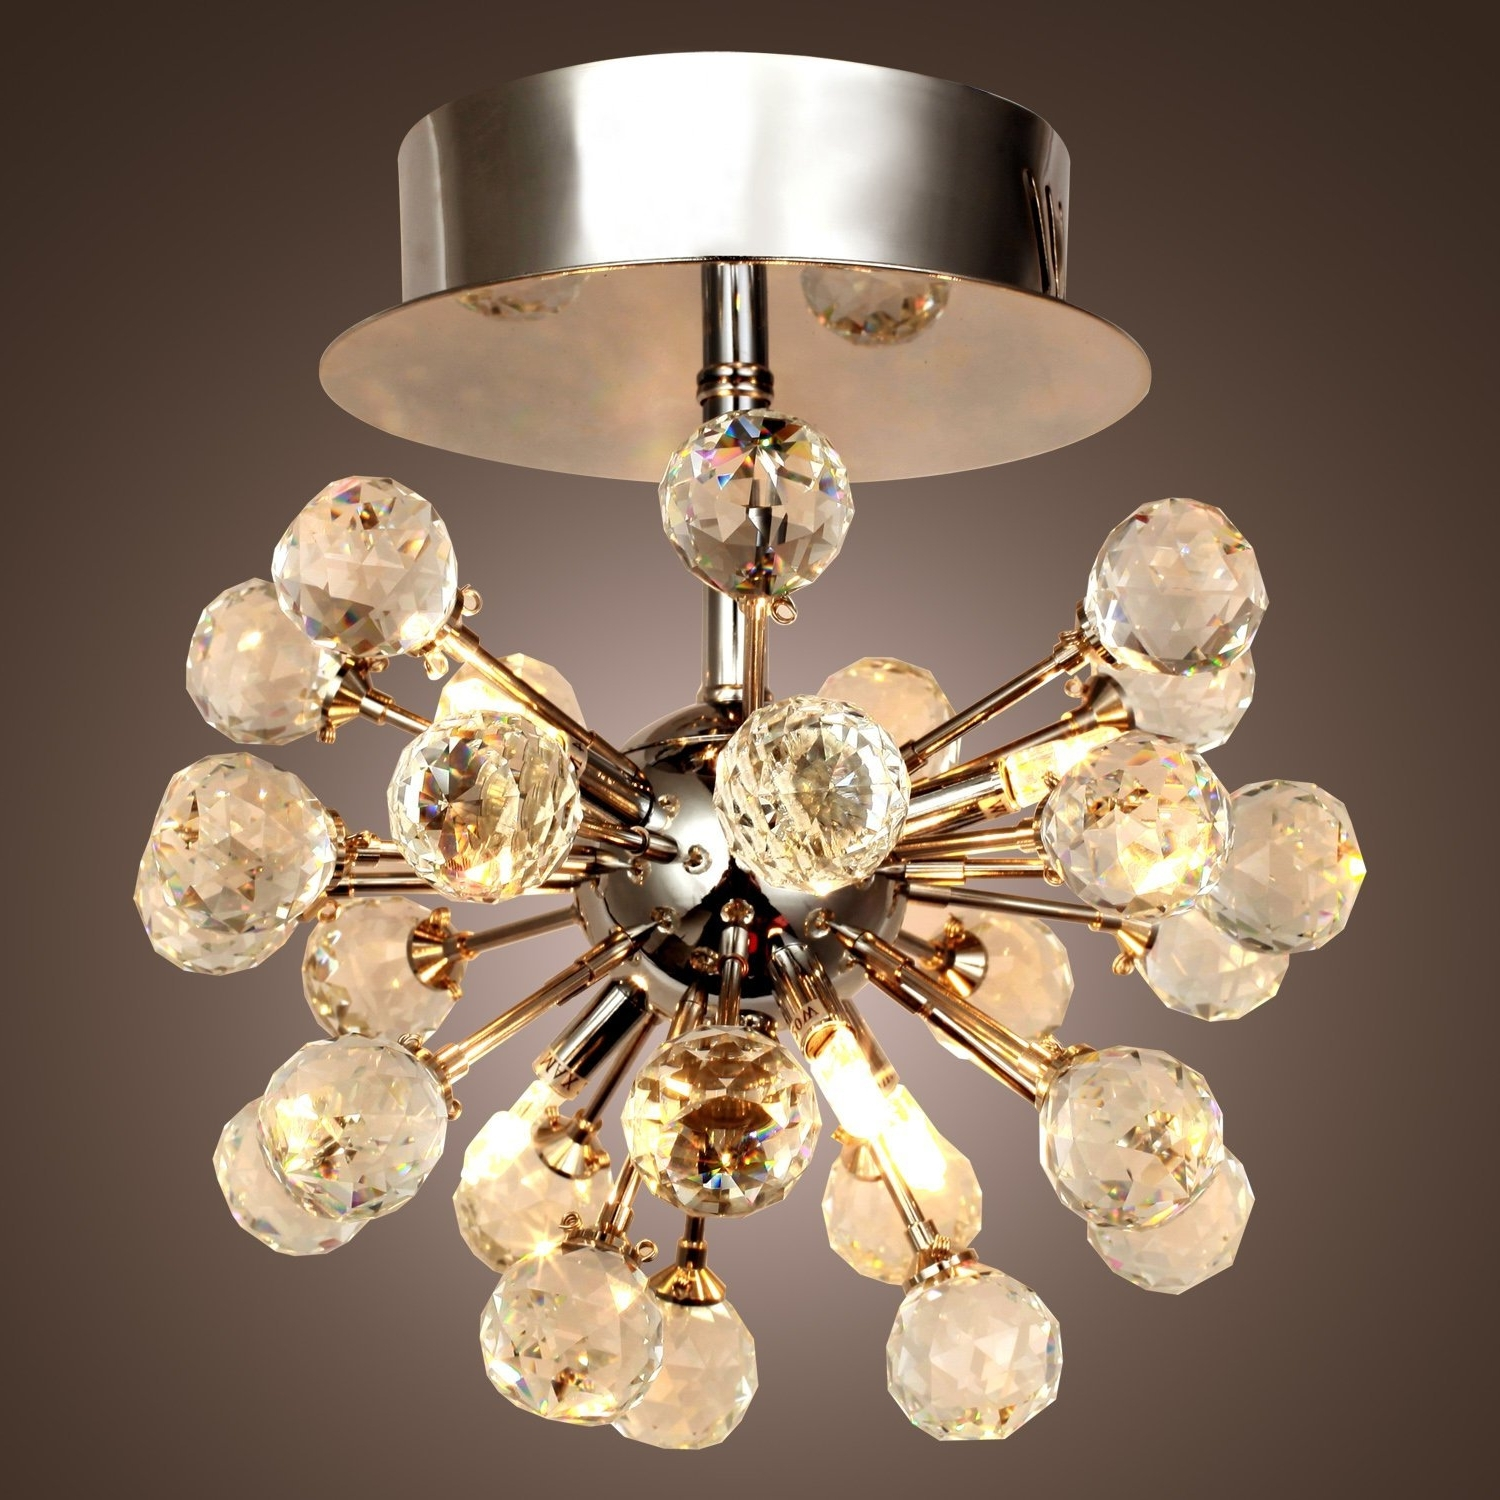 Popular Lightinthebox Max 10W K9 Crystal Chandelier With 6 Lights In Globe with regard to Short Chandelier